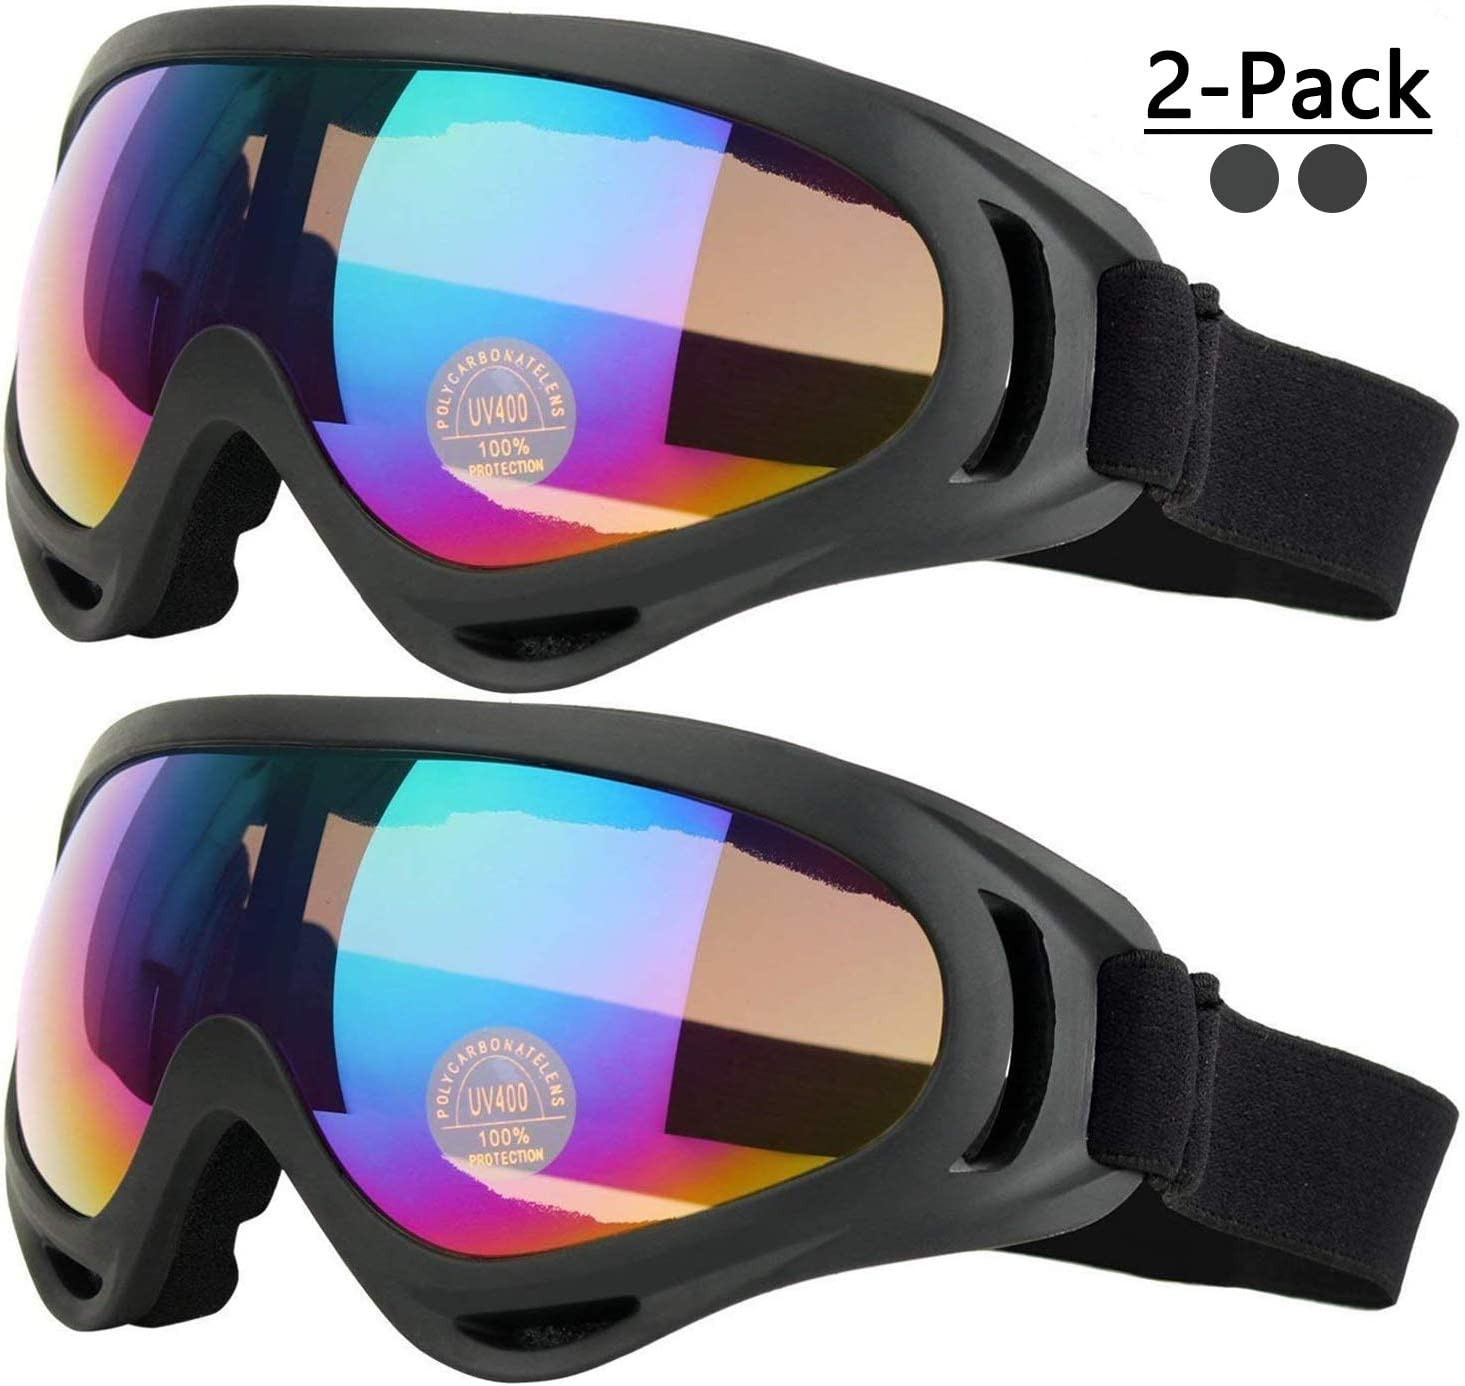 COOLOO Ski Goggles, Pack of 2, Snowboard Goggles for Kids, Boys Girls, Youth, Men Women, with Helmet Protection, Wind Resistance, Anti-Glare Lenses